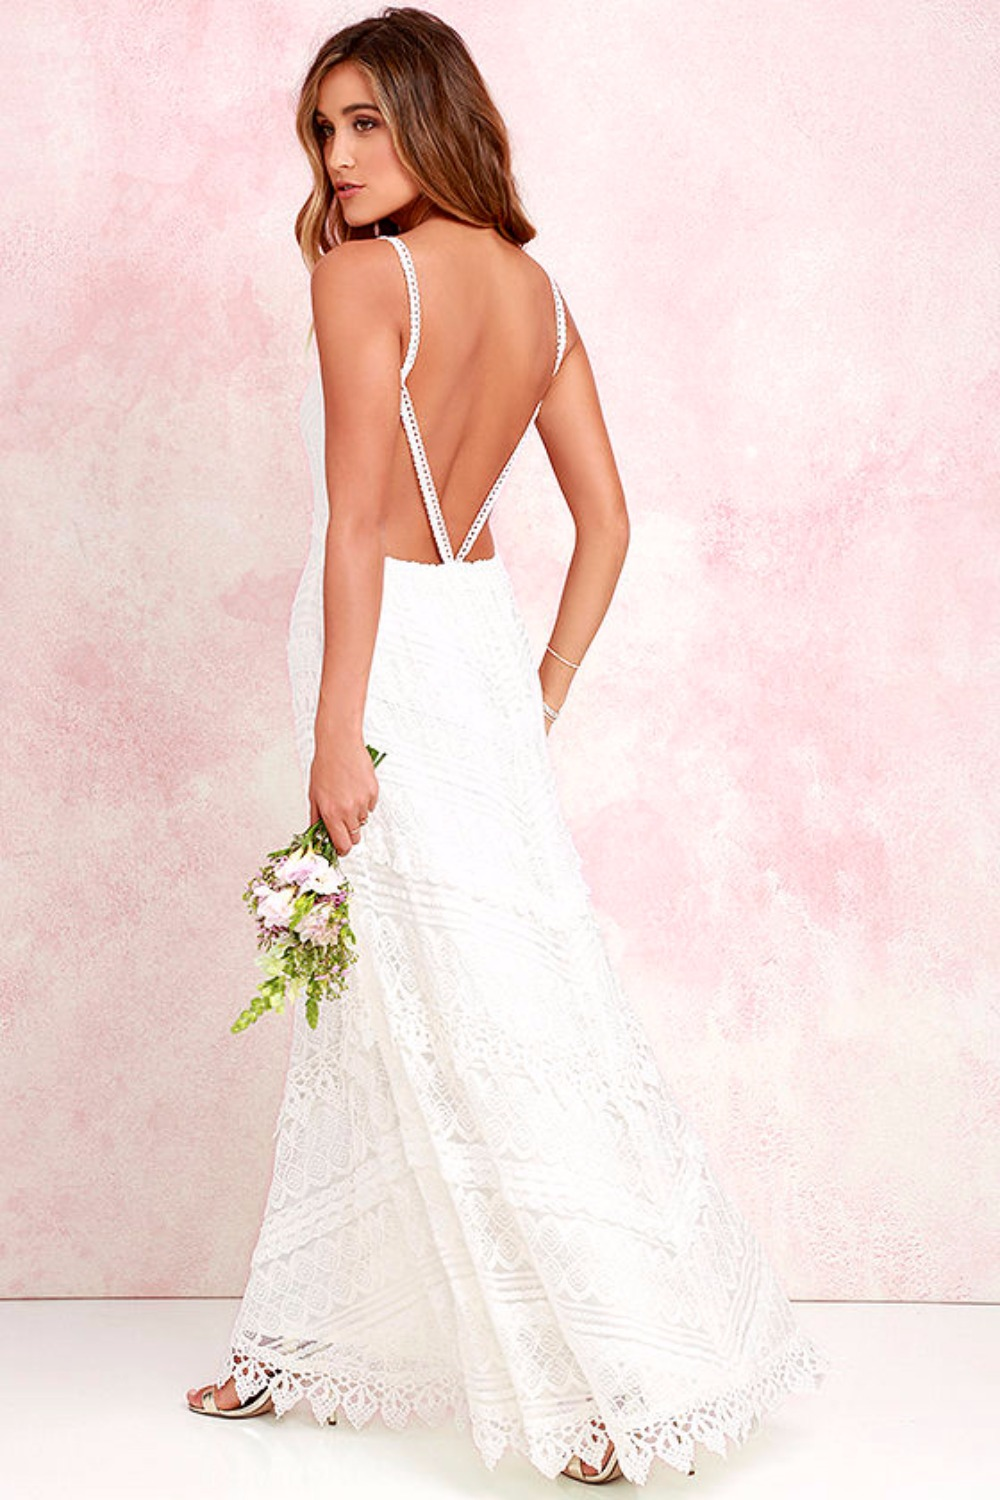 2017 Wedding Dresses Under $600